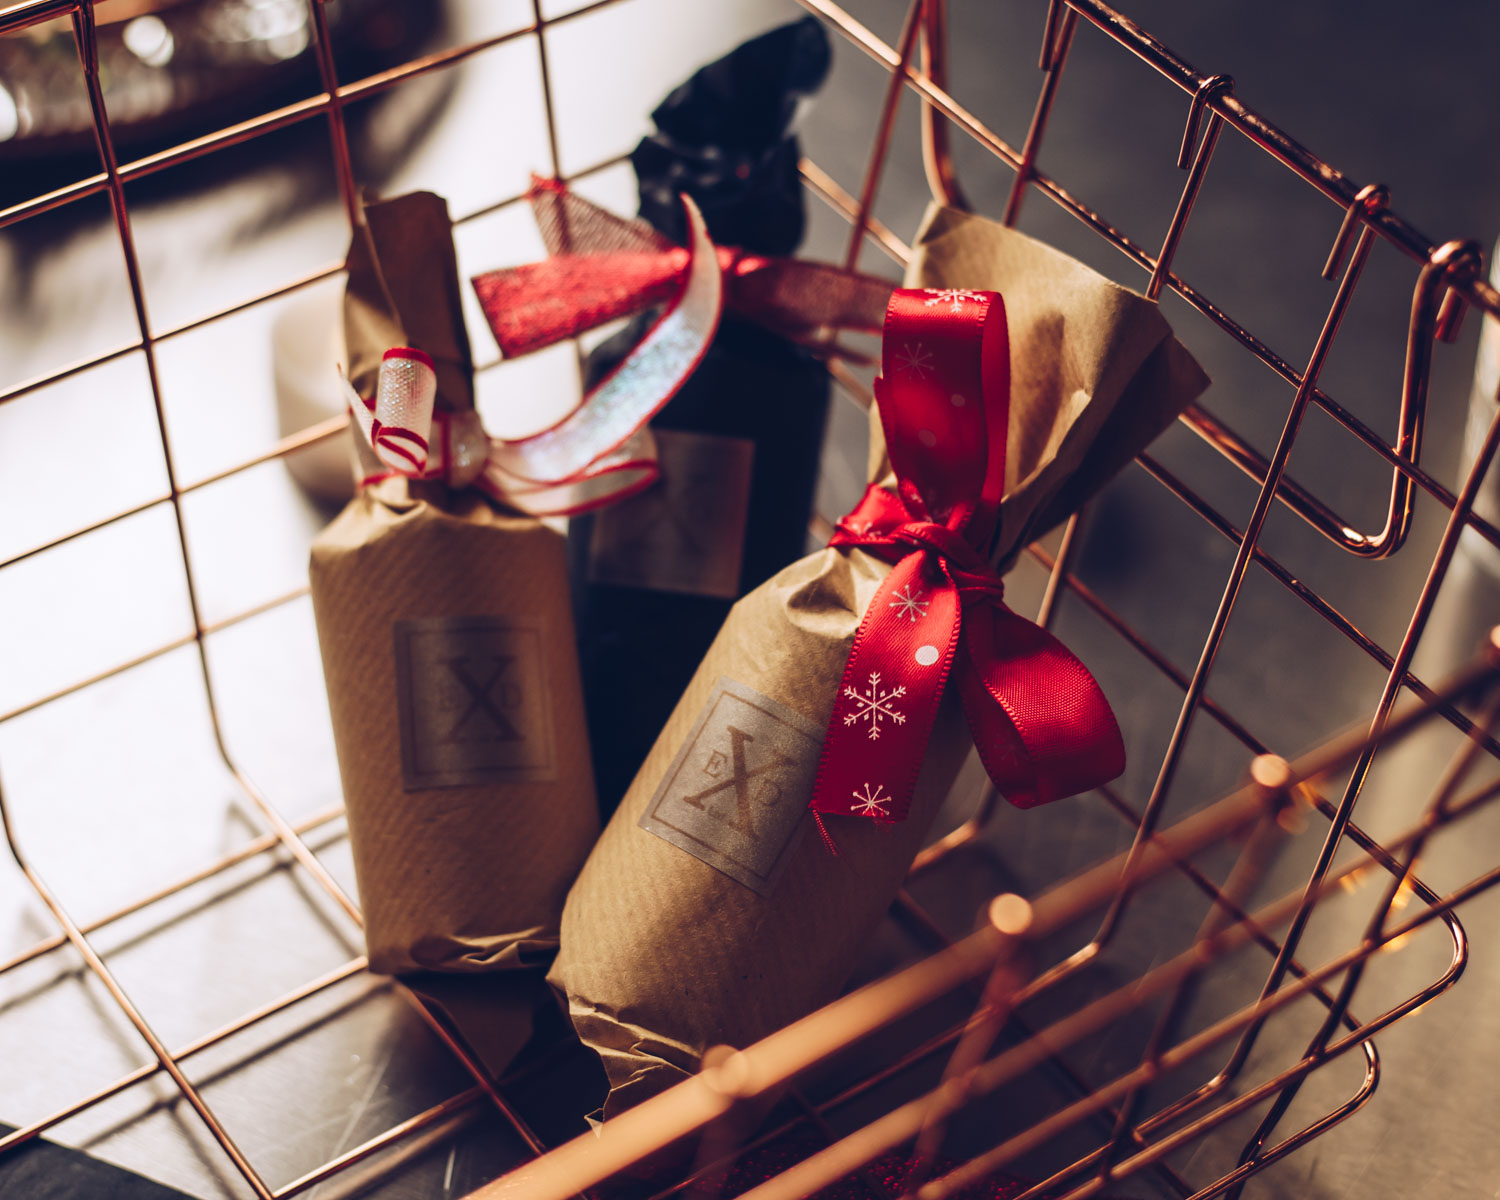 Gin Gifts to Give this Christmas